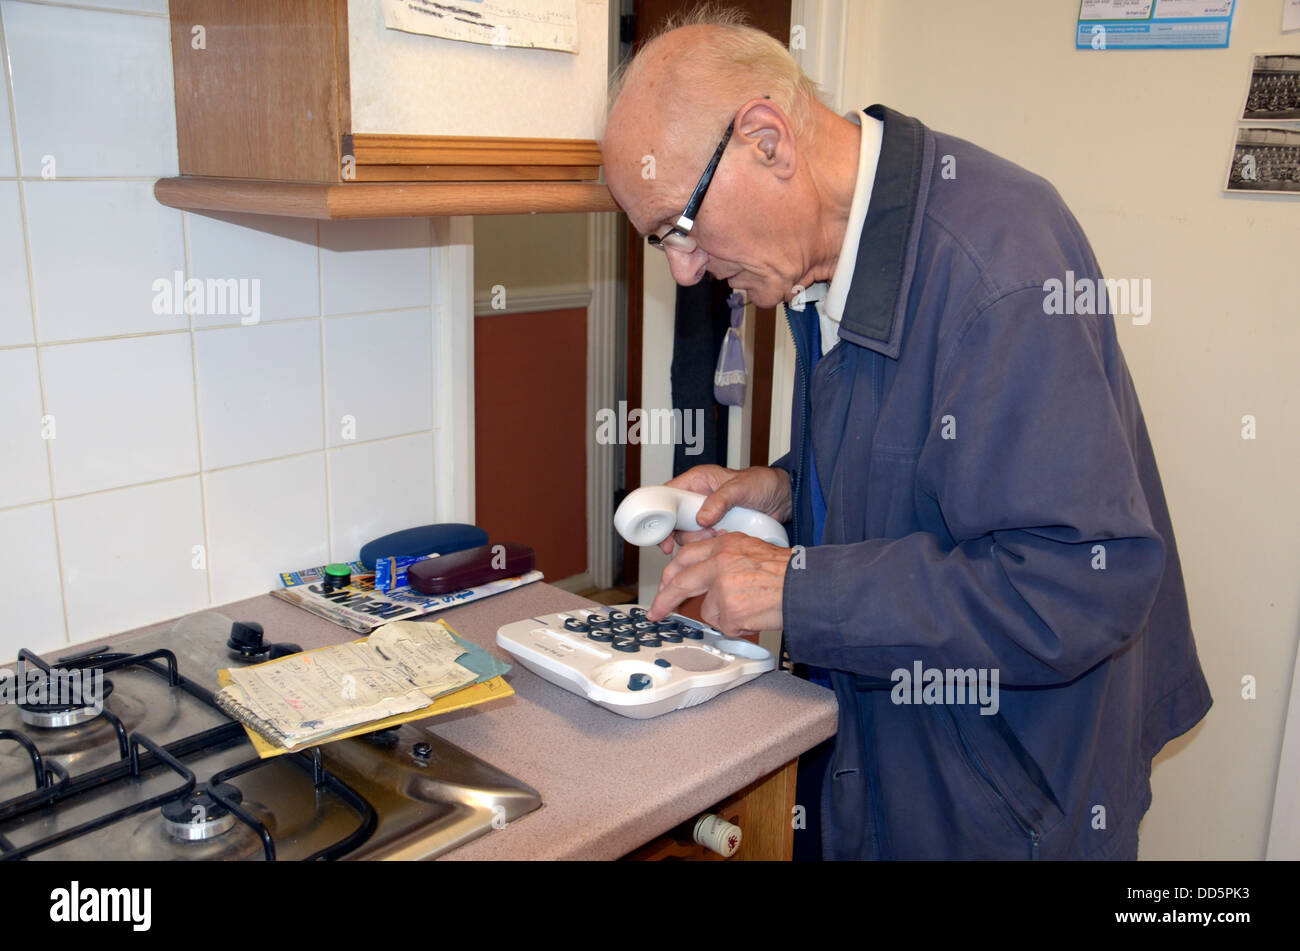 An elderly man making a phone call using his landline in his kitchen. - Stock Image